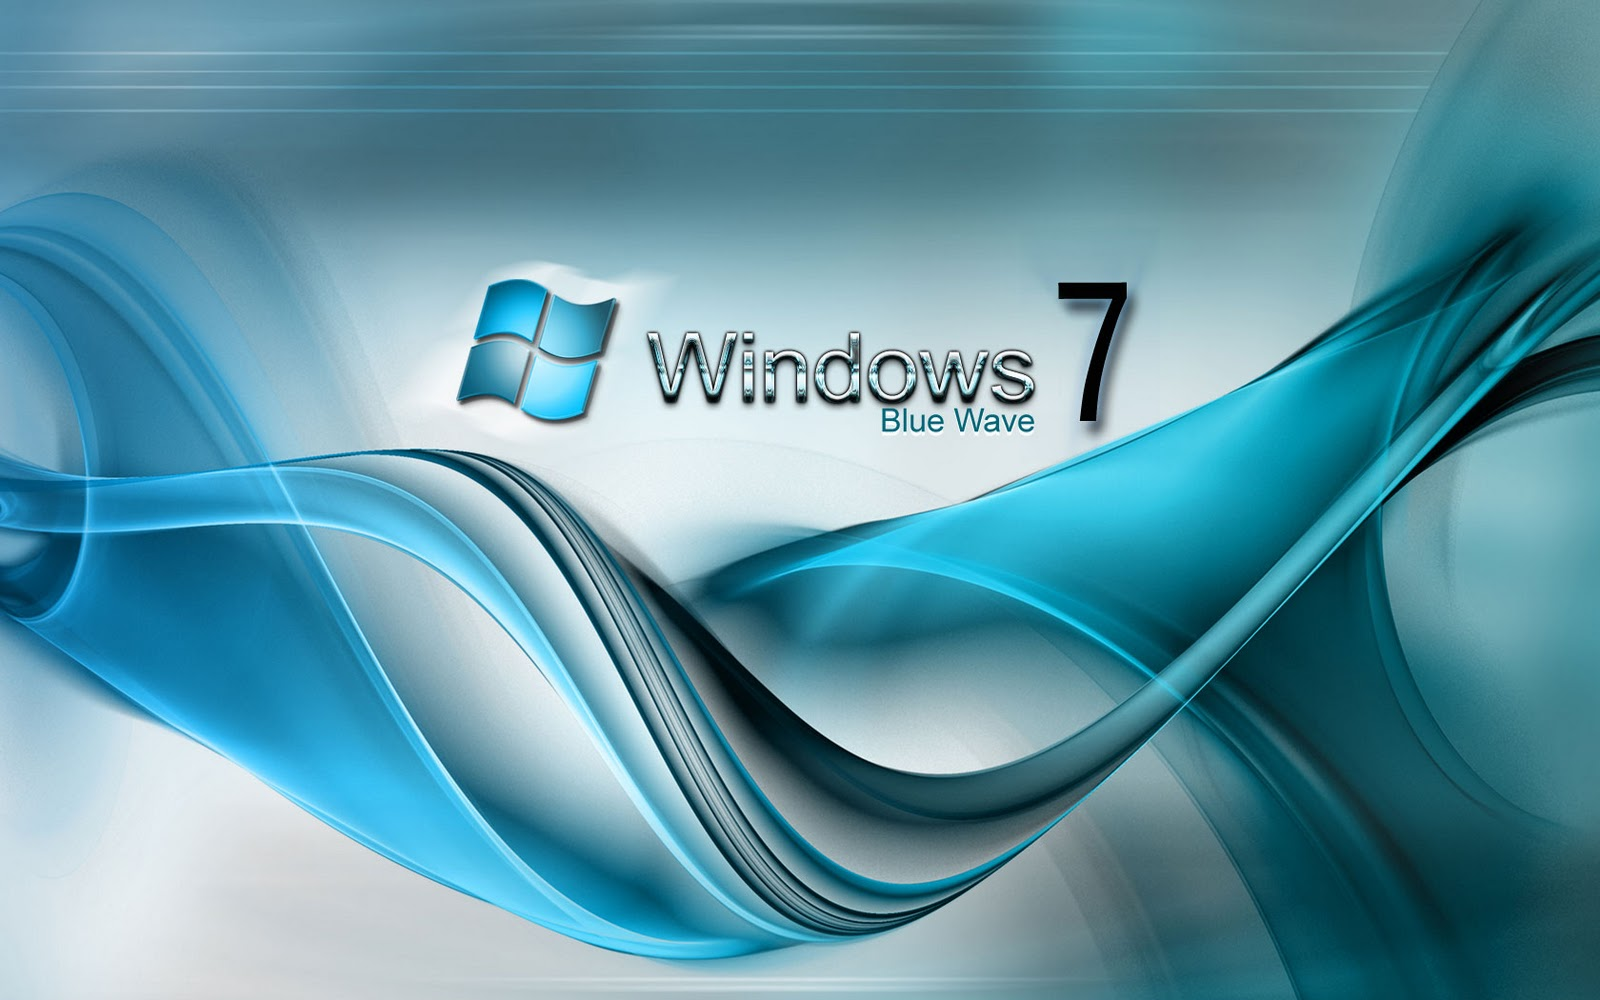 Download Windows 7 Blue Wave Wallpapers Wallpapers Area 1600x1000